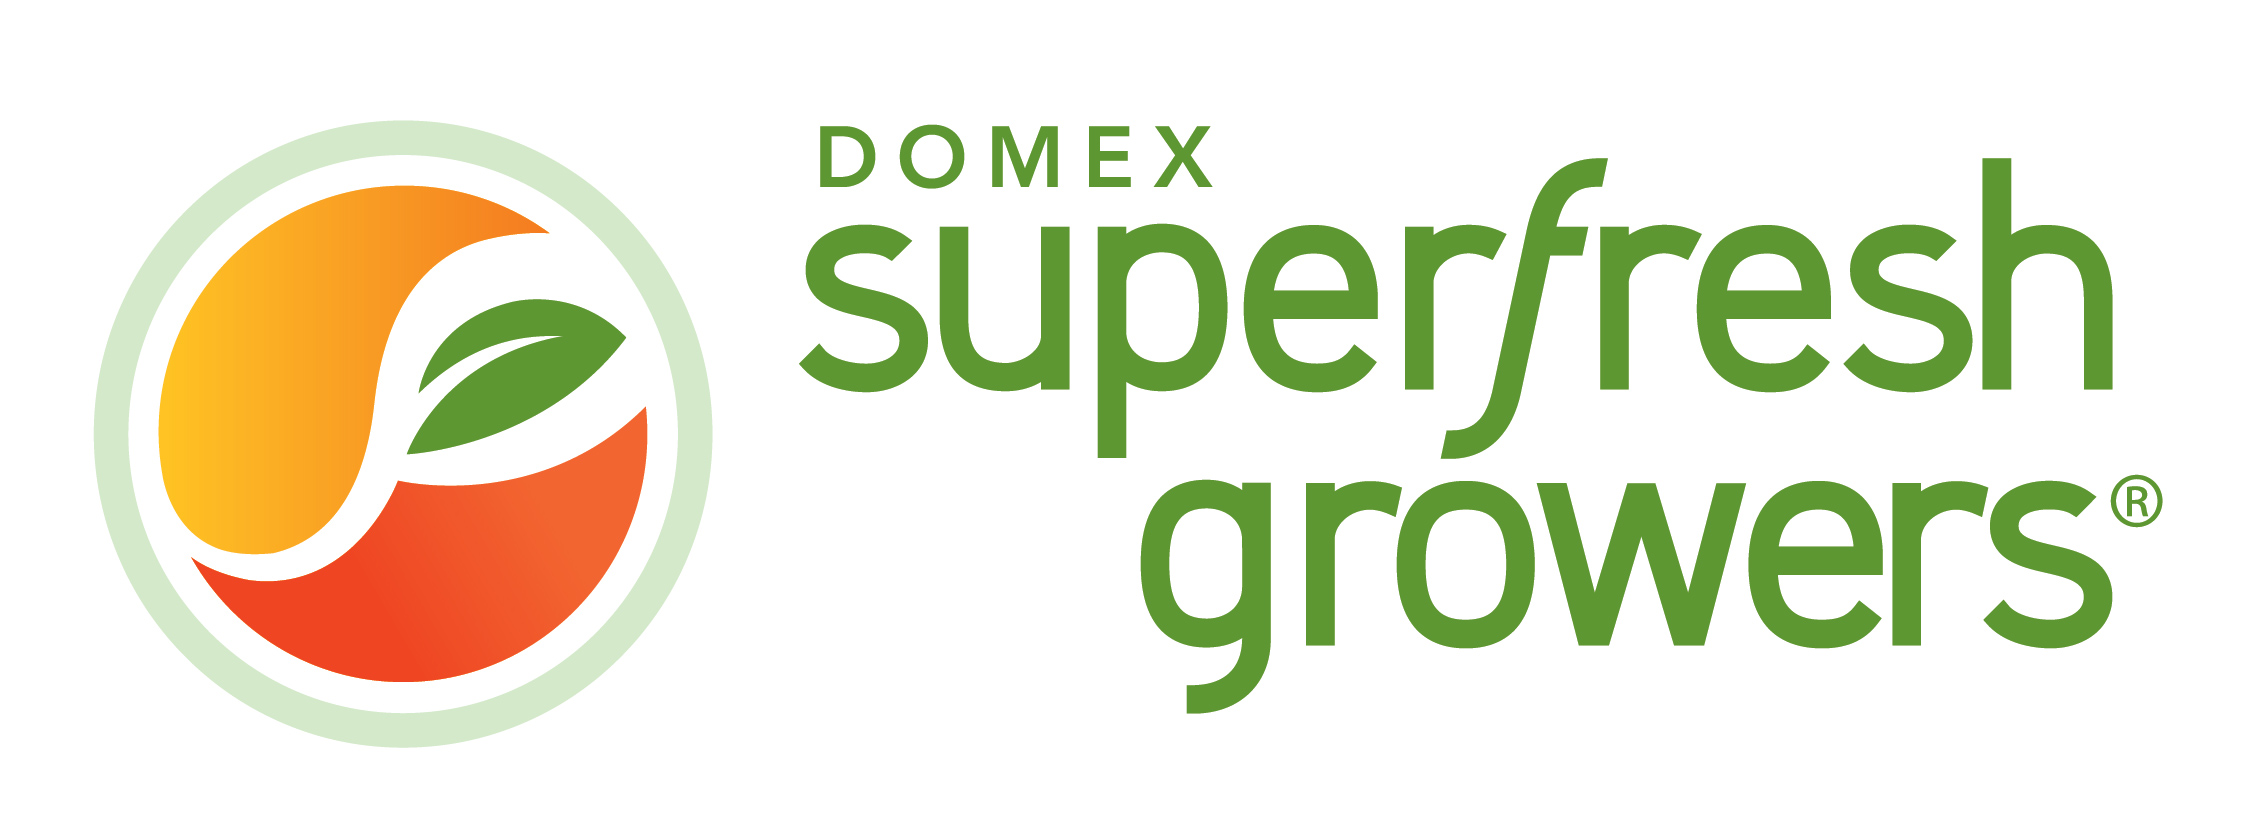 Domex - Superfresh Growers